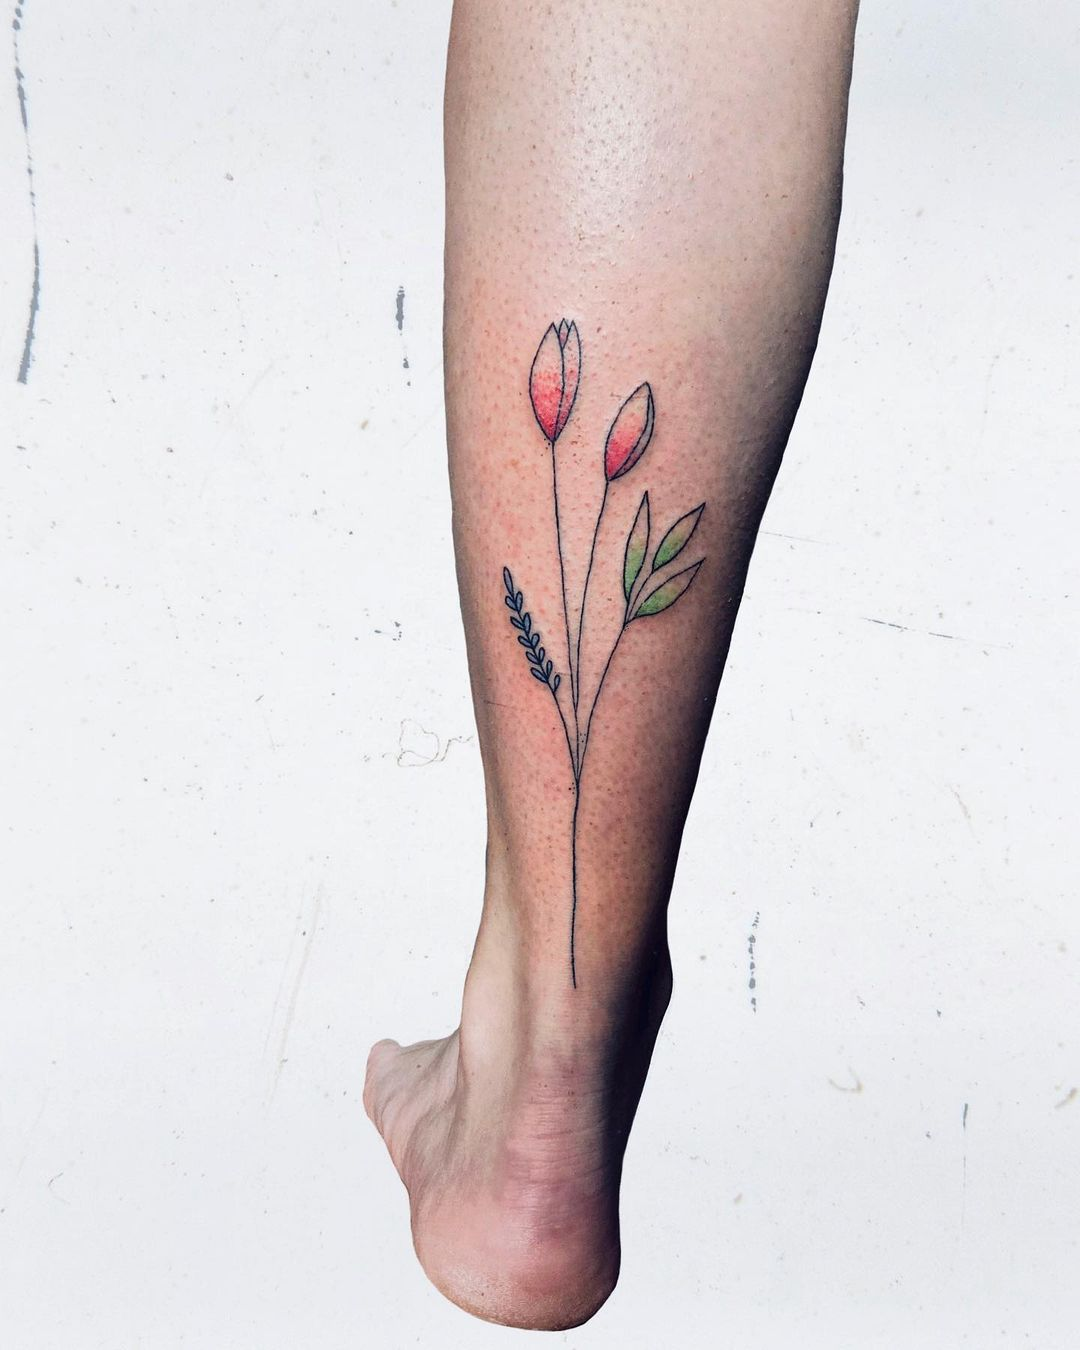 25 best first tattoo ideas and the least painful spots to get them